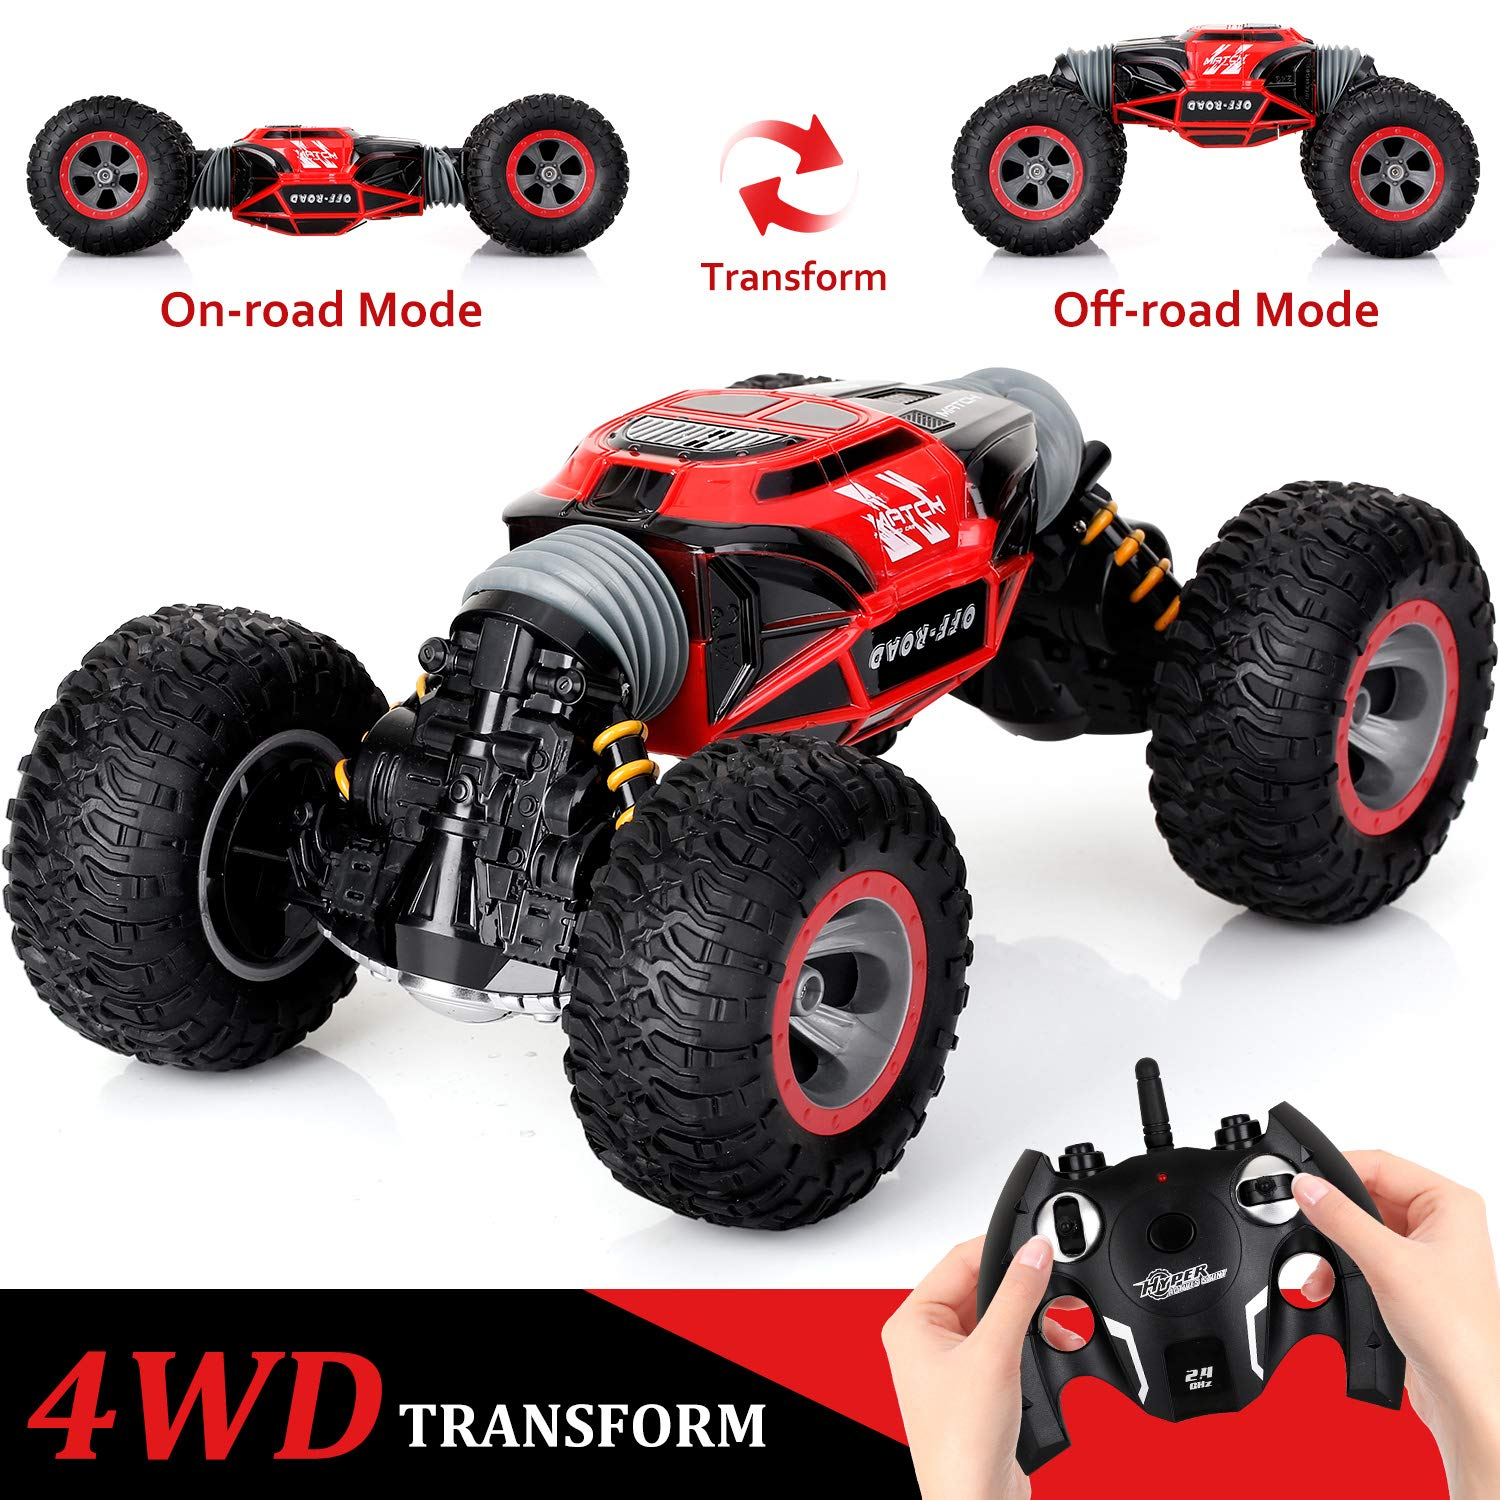 KingsDragon Remote Control Car,2.4 GHZ High Speed Stunt RC Racing Cars RC Rock Crawler w/ Rechargeable Batteries,Indoor Outdoor Motors Vehicles Buggy Hobby Car Toy Gifts for Kids Boys Girls Adult-Red